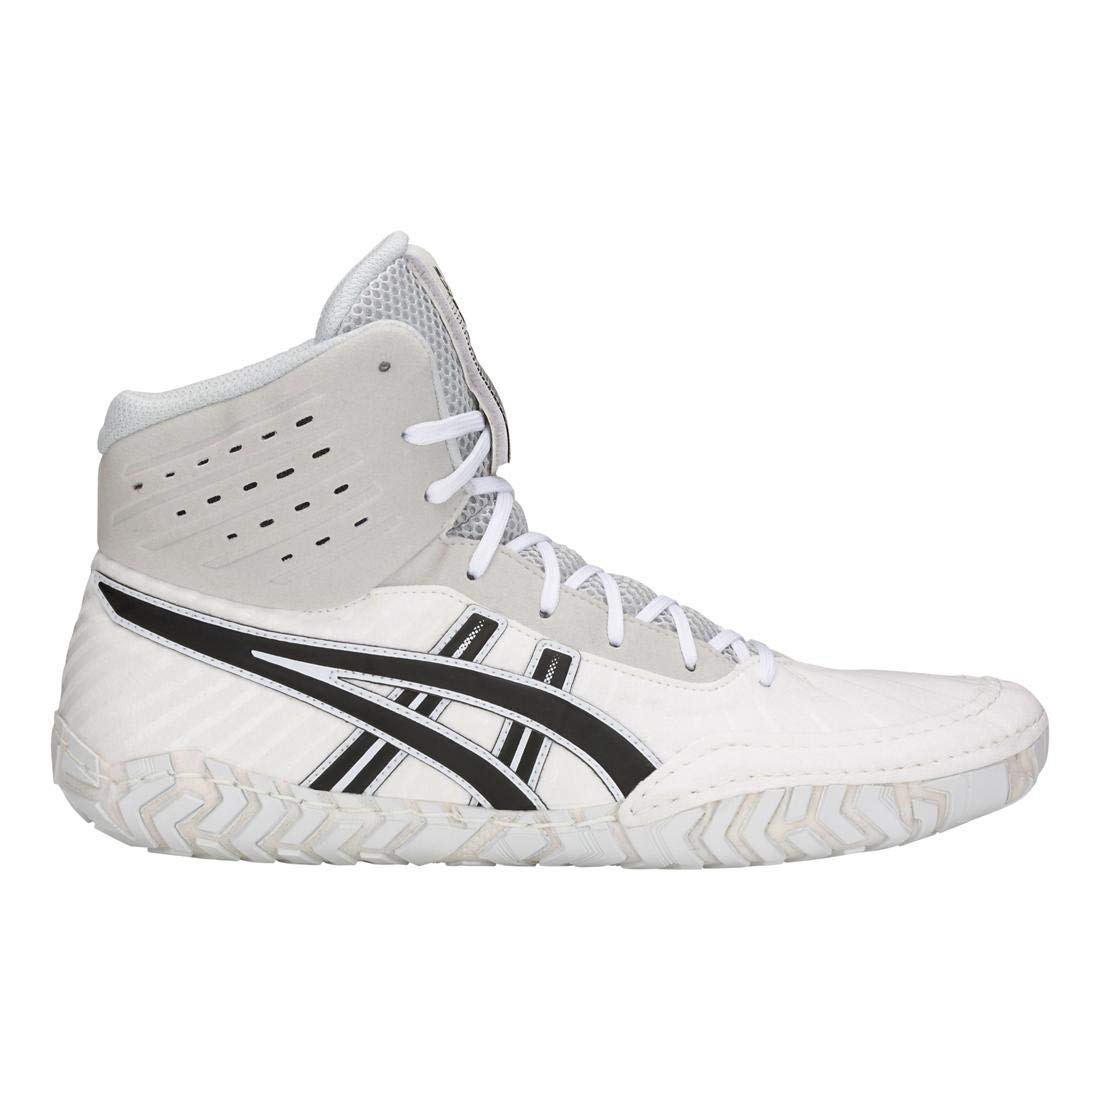 (13 D(M) US, White/Black) - ASICS Aggressor 4 Men's Wrestling Shoes   B07814LQR1